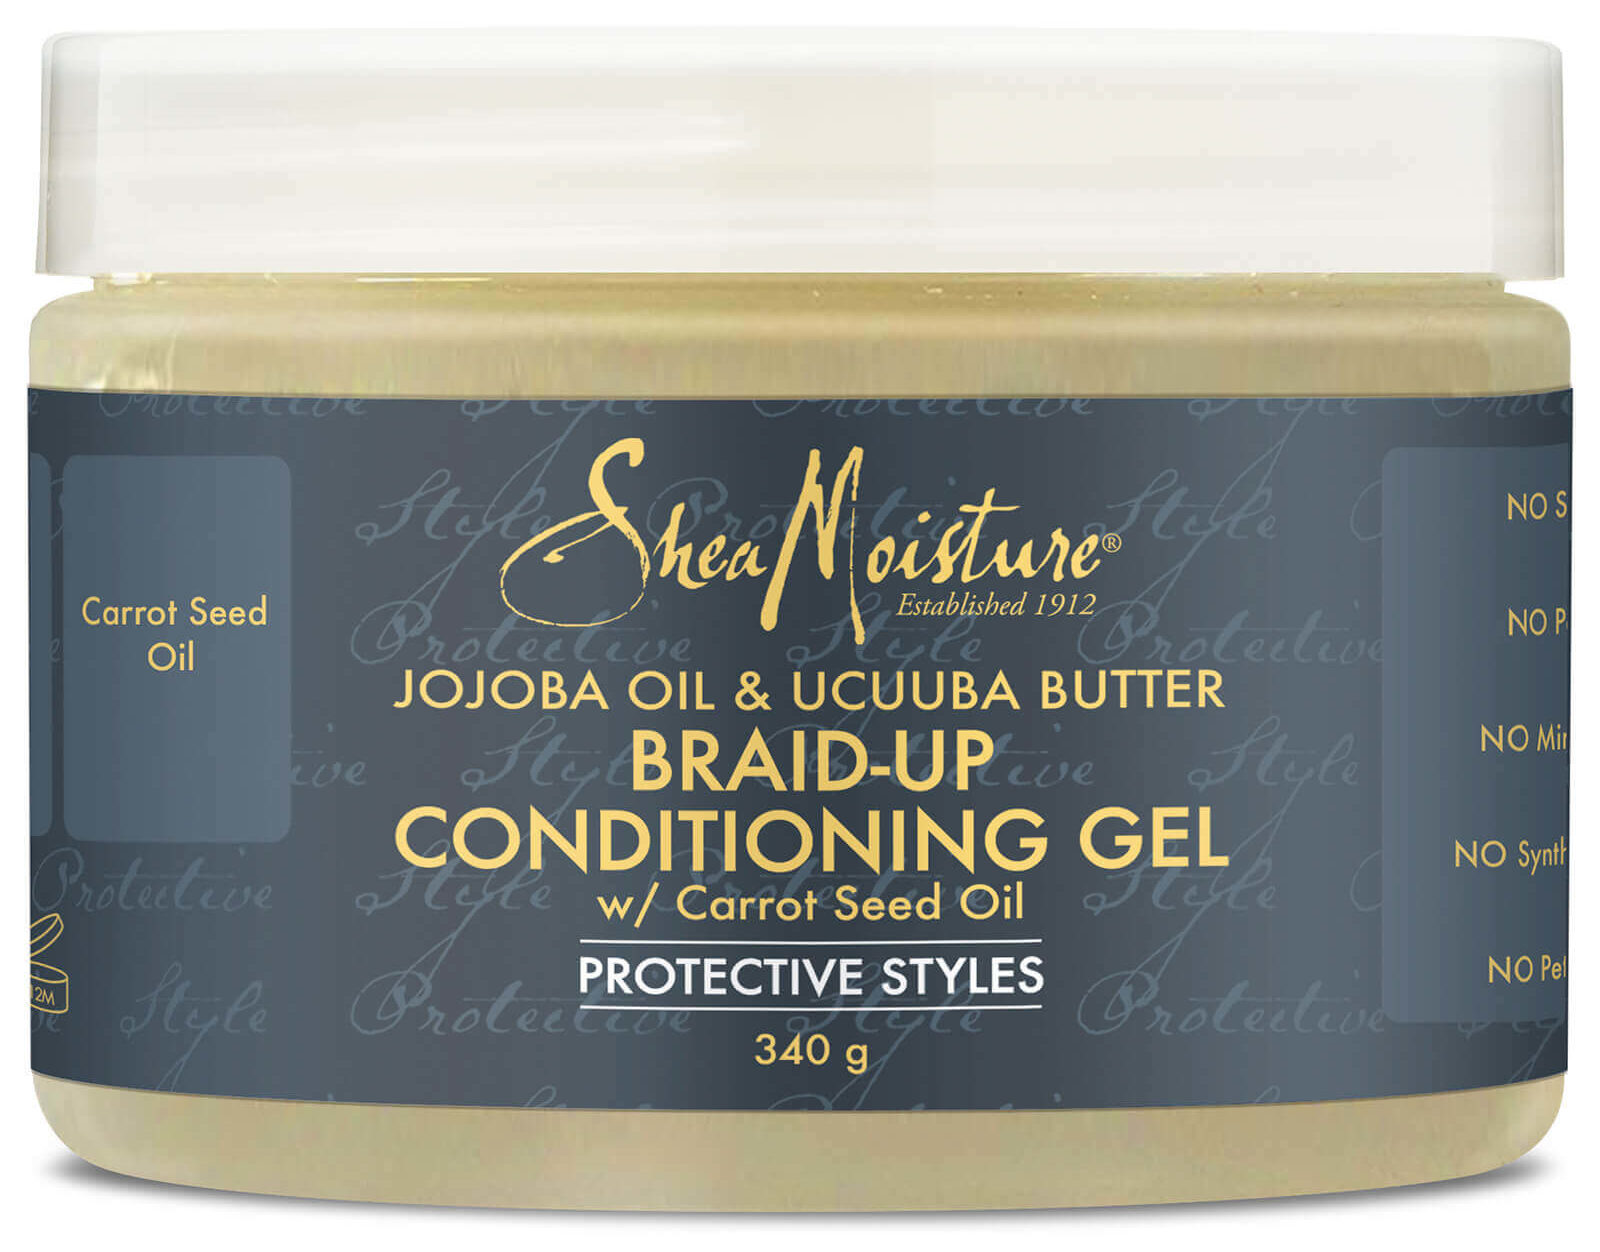 Shea Moisturiser JoJoba Oil and Ucuuba Butter Braid Up Conditioning Gel.